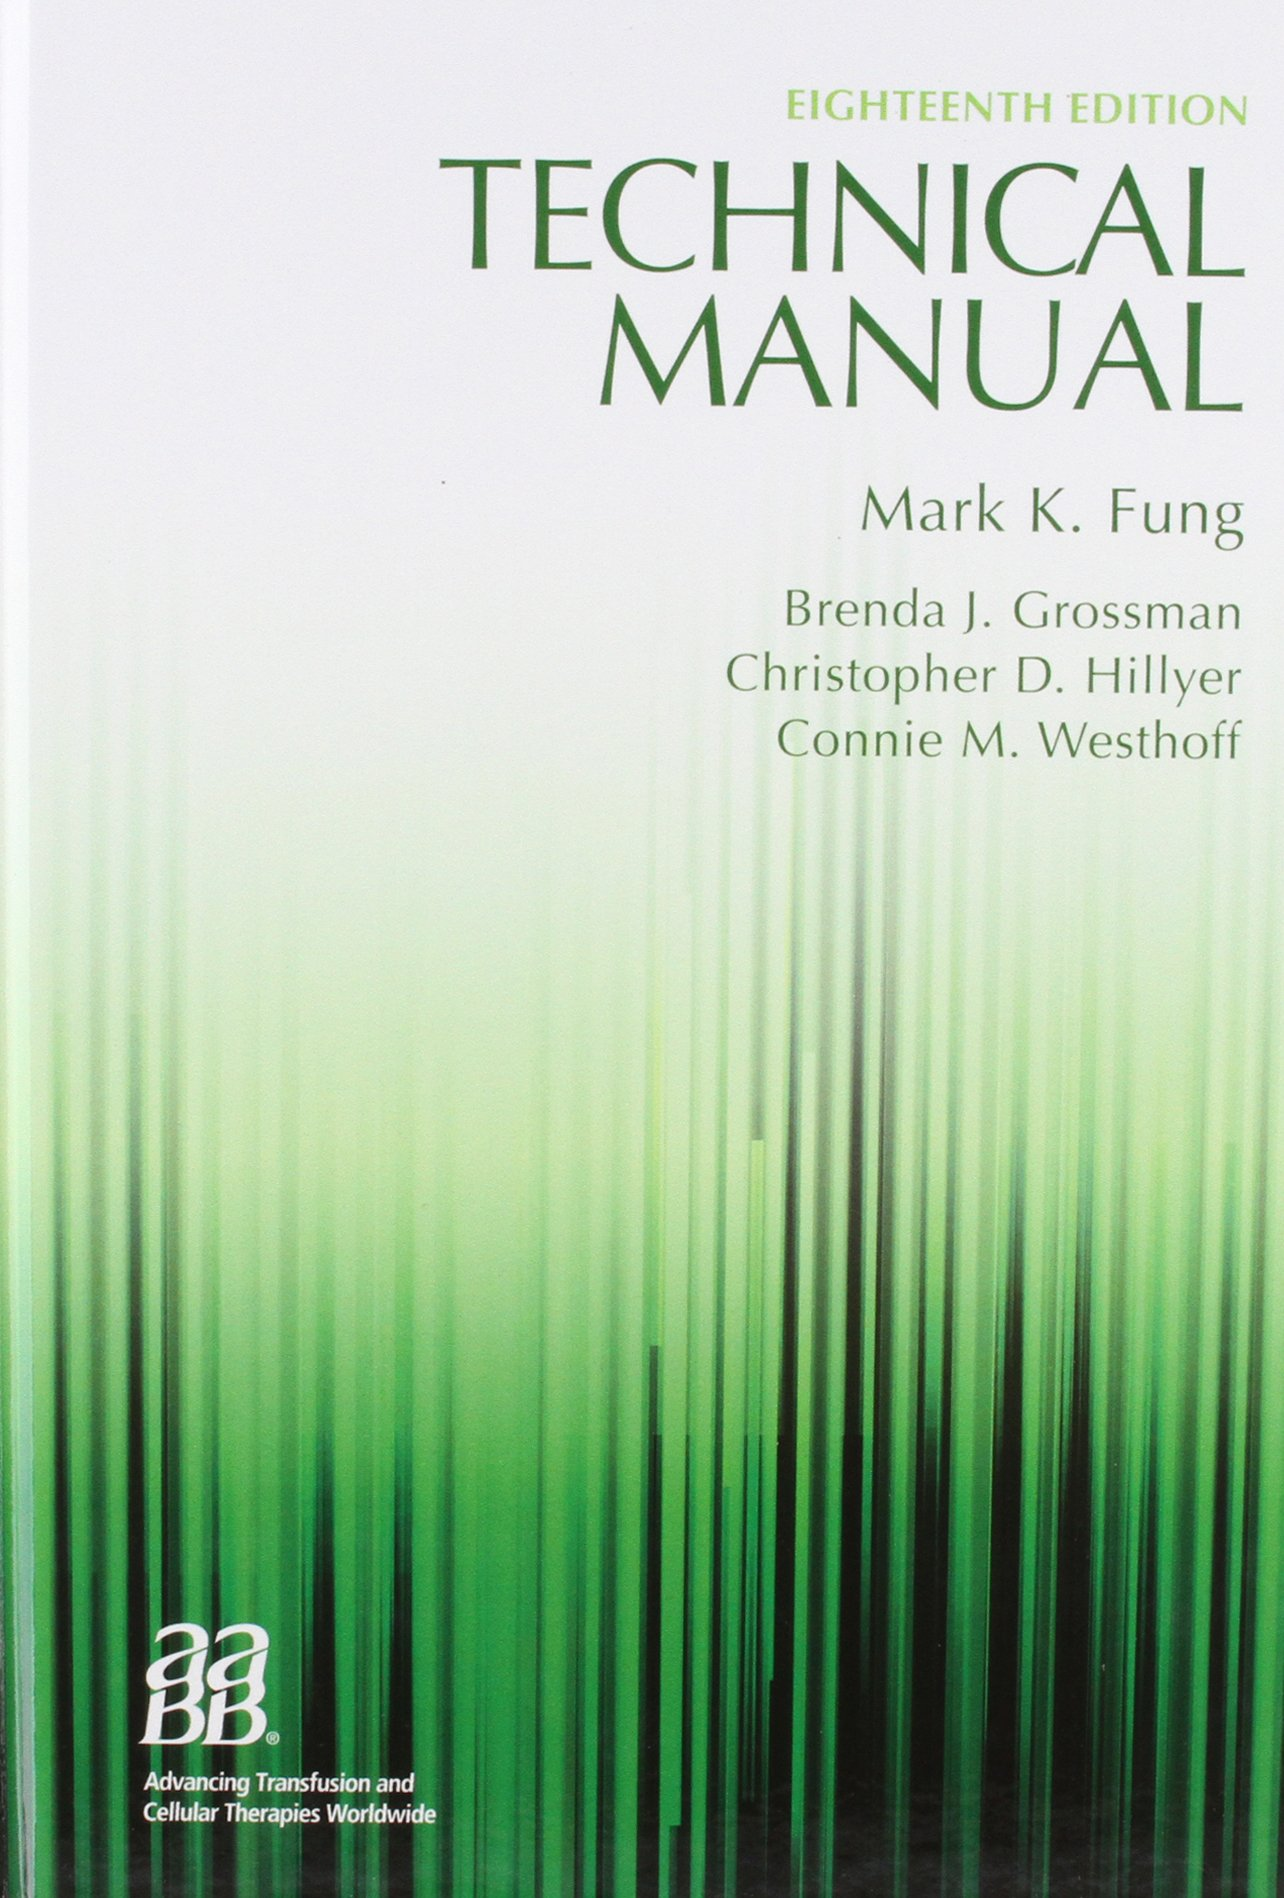 Technical Manual (Aabb) (Technical Manual of the American Assoc of Blood  Banks): Amazon.co.uk: John D Roback, Mark K Fung Ed.: 9781563958885: Books